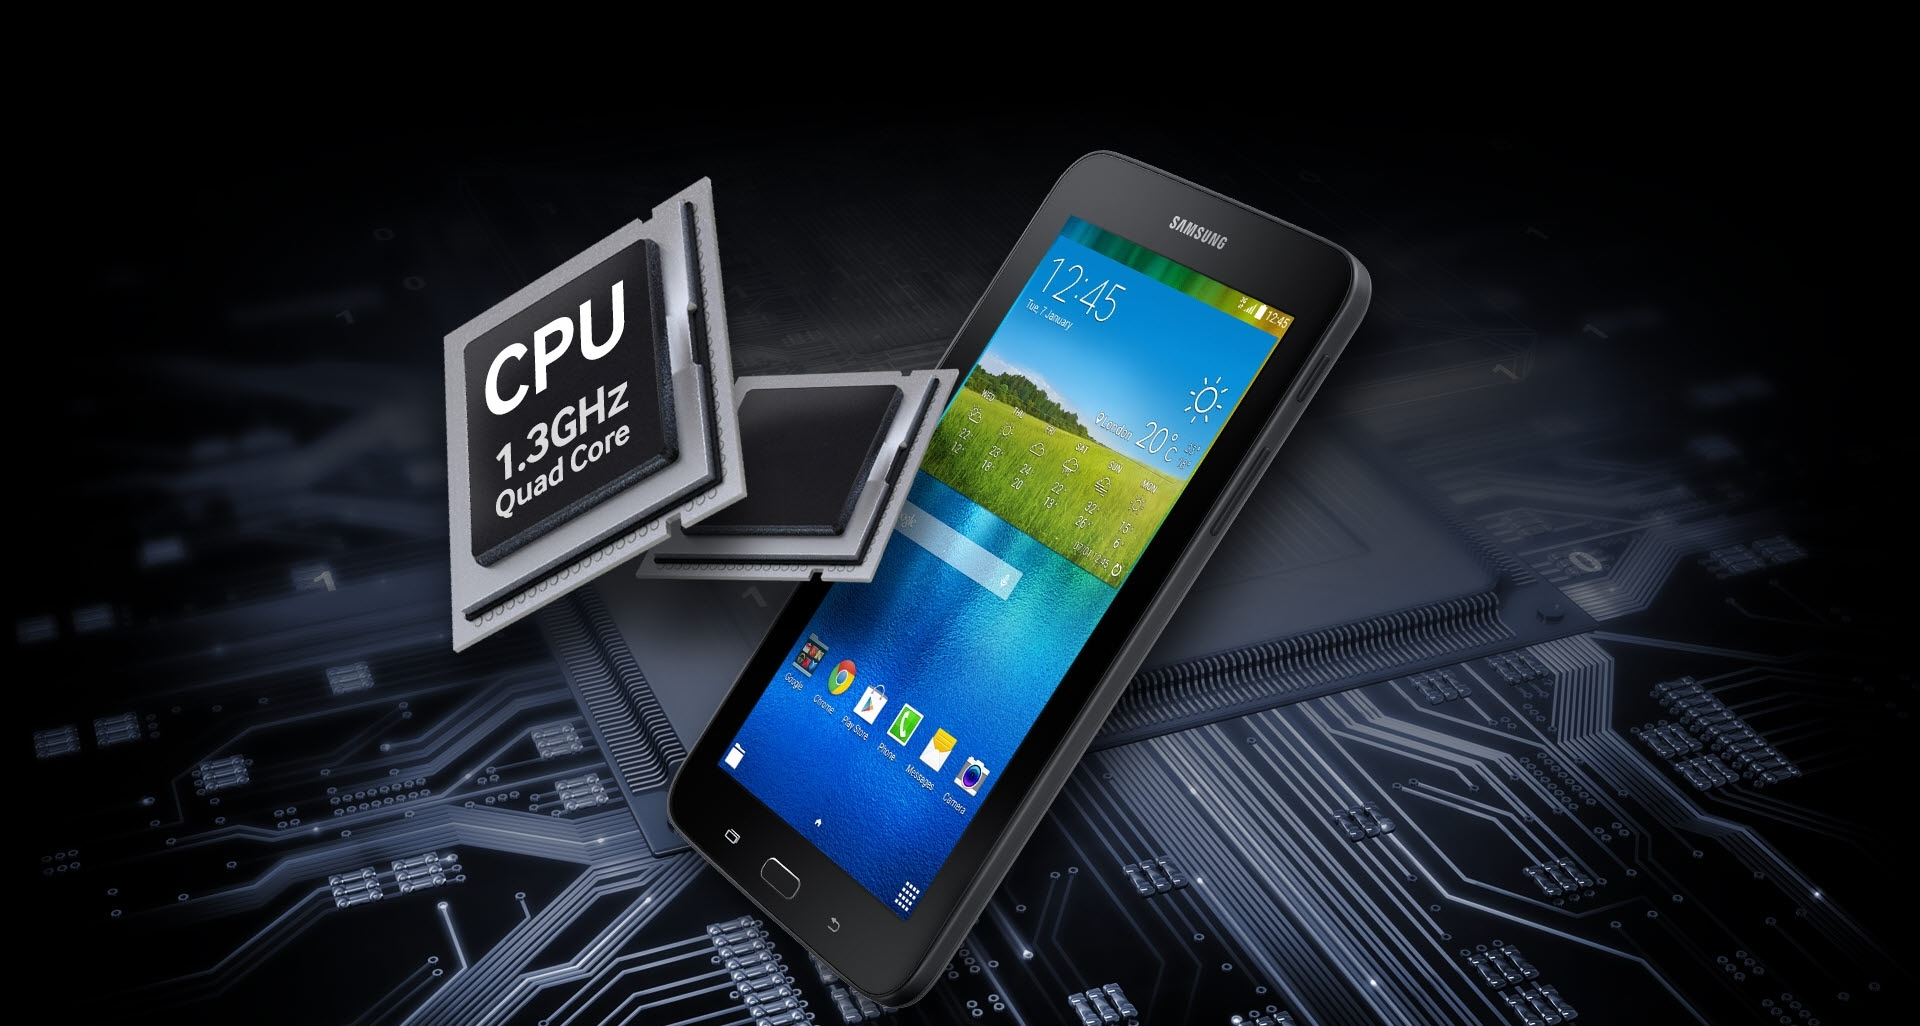 1.3 GHz Quad Core Processor